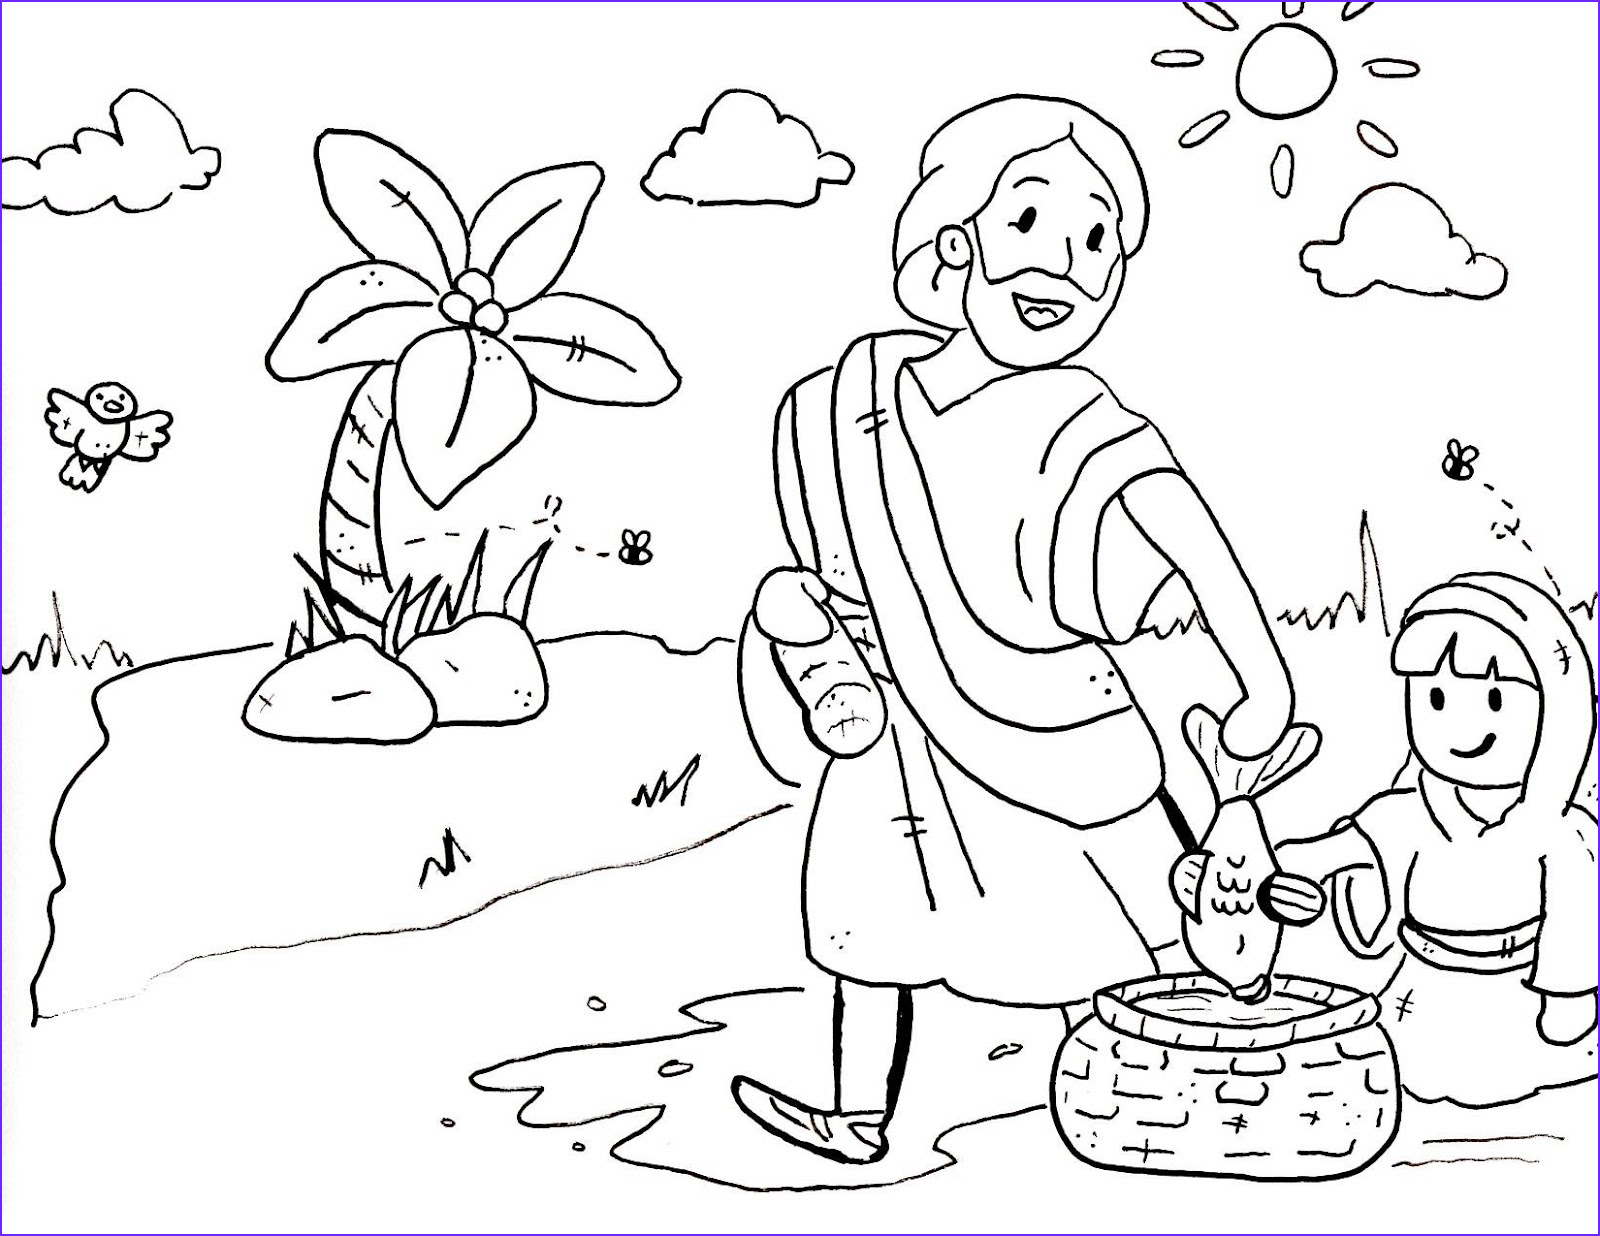 Free Printable Bible Coloring Pages Beautiful Photography Scraphappy Paper Crafter Free Digis Great for Sunday